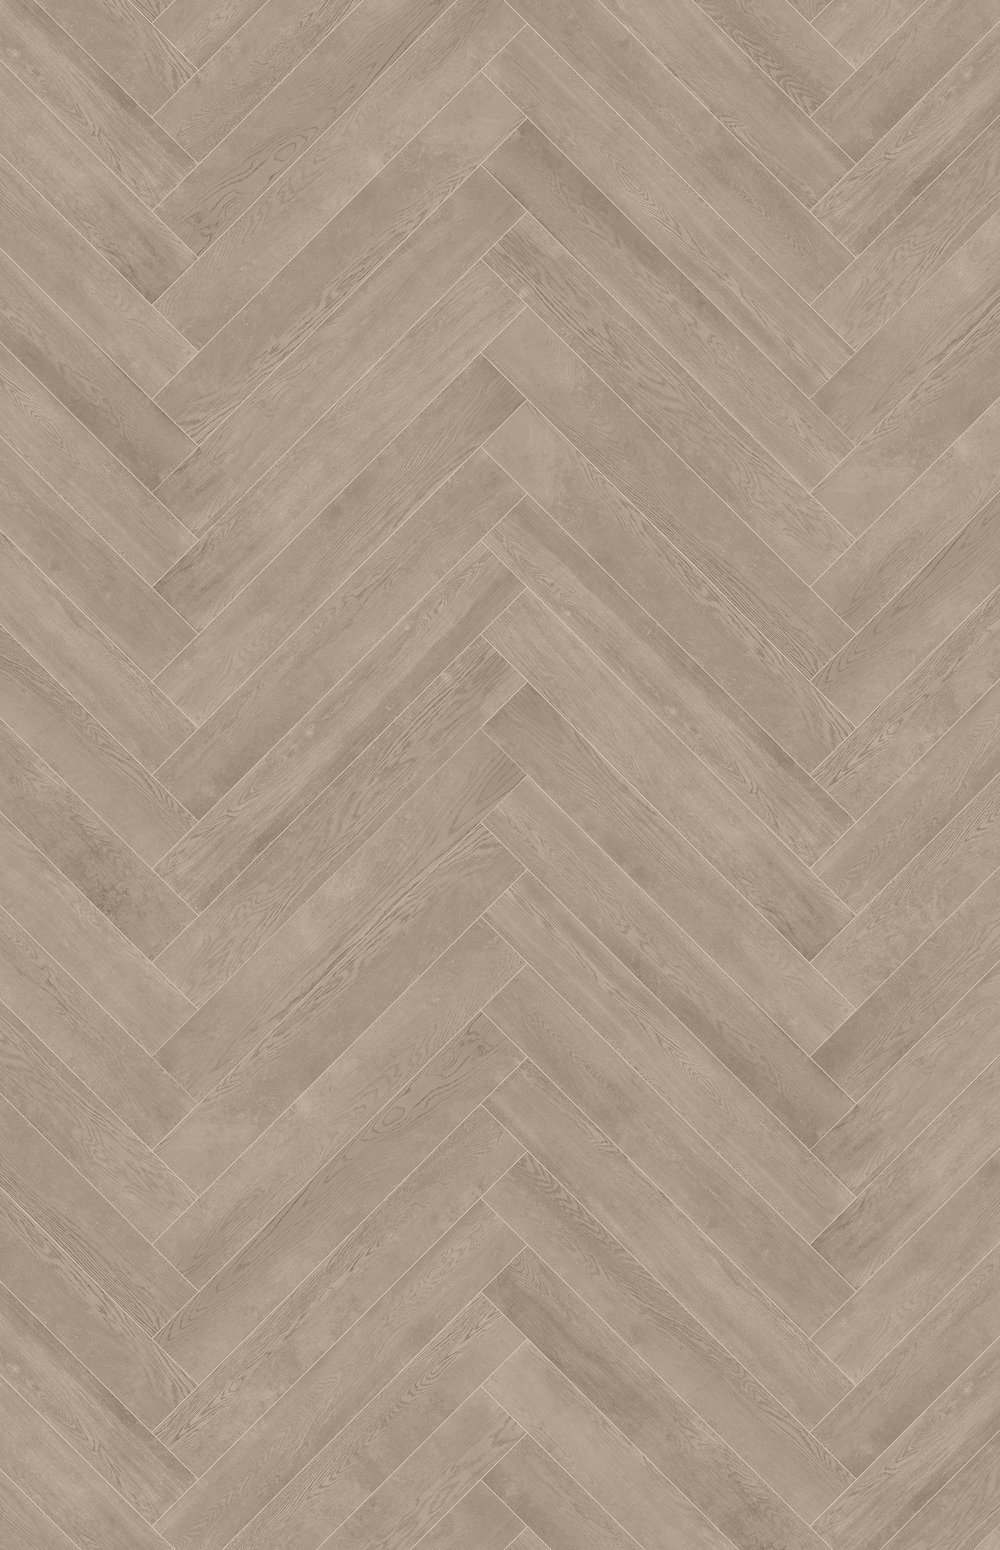 Duet LIGHT herringbone